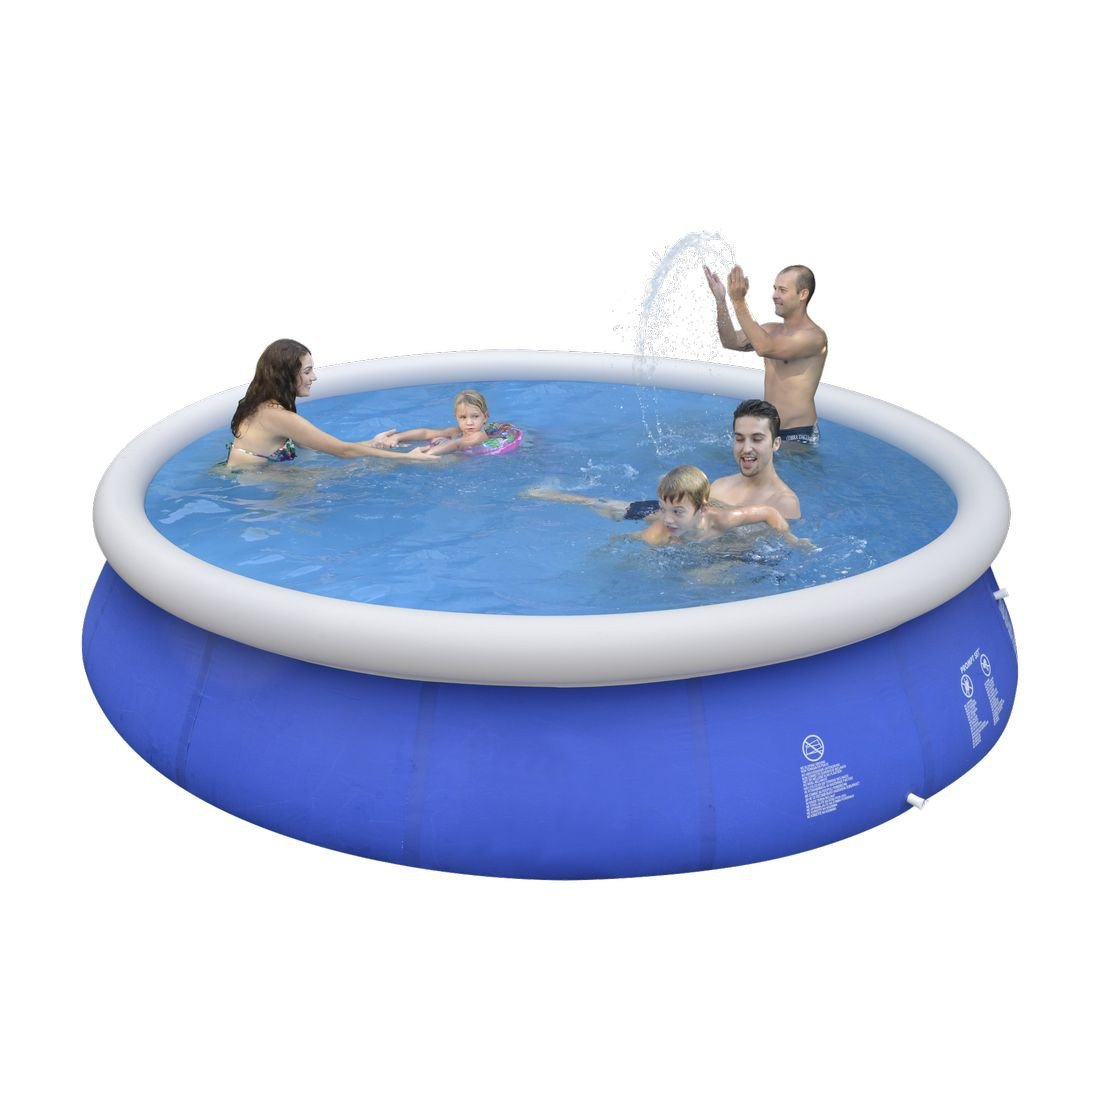 Jilong Marin Blue 450 - Quick-up Pool 450x90cm